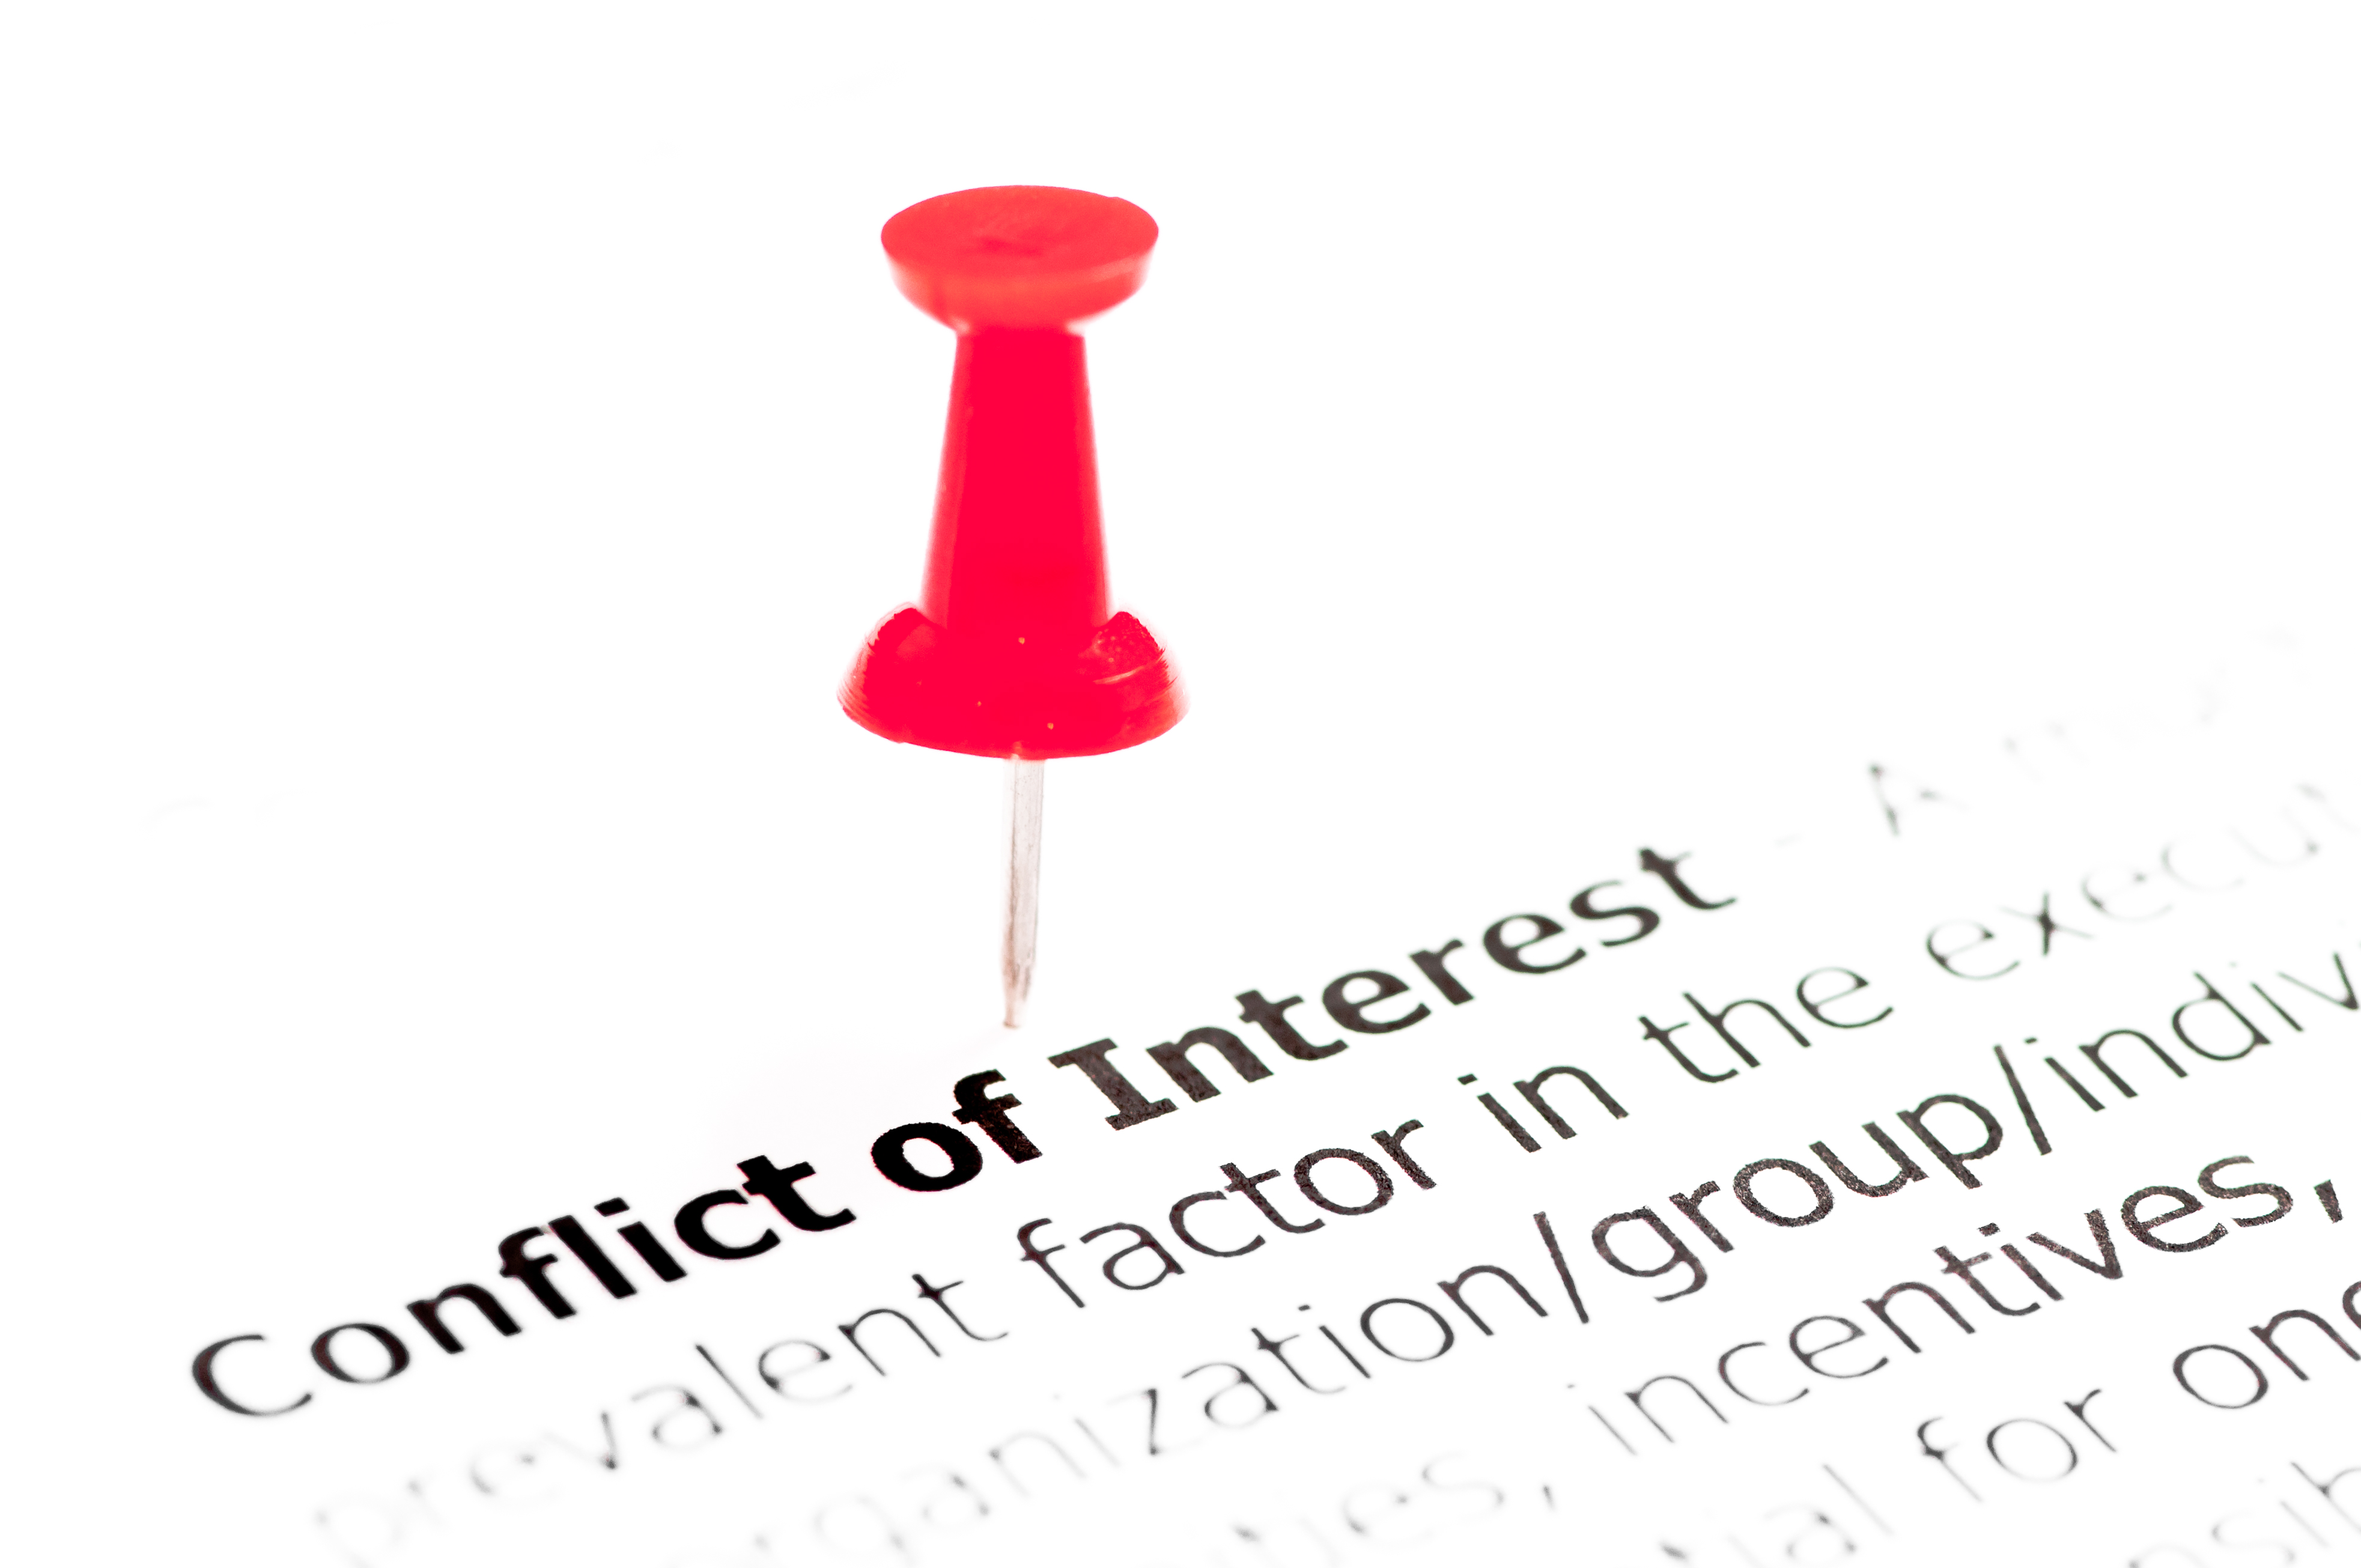 an analysis of the conflicts of interest Conflicts of interest in the stock recommendations of investment banks and their determinants - volume 44 issue 5 - chung-hua shen, hsiang-lin chih.